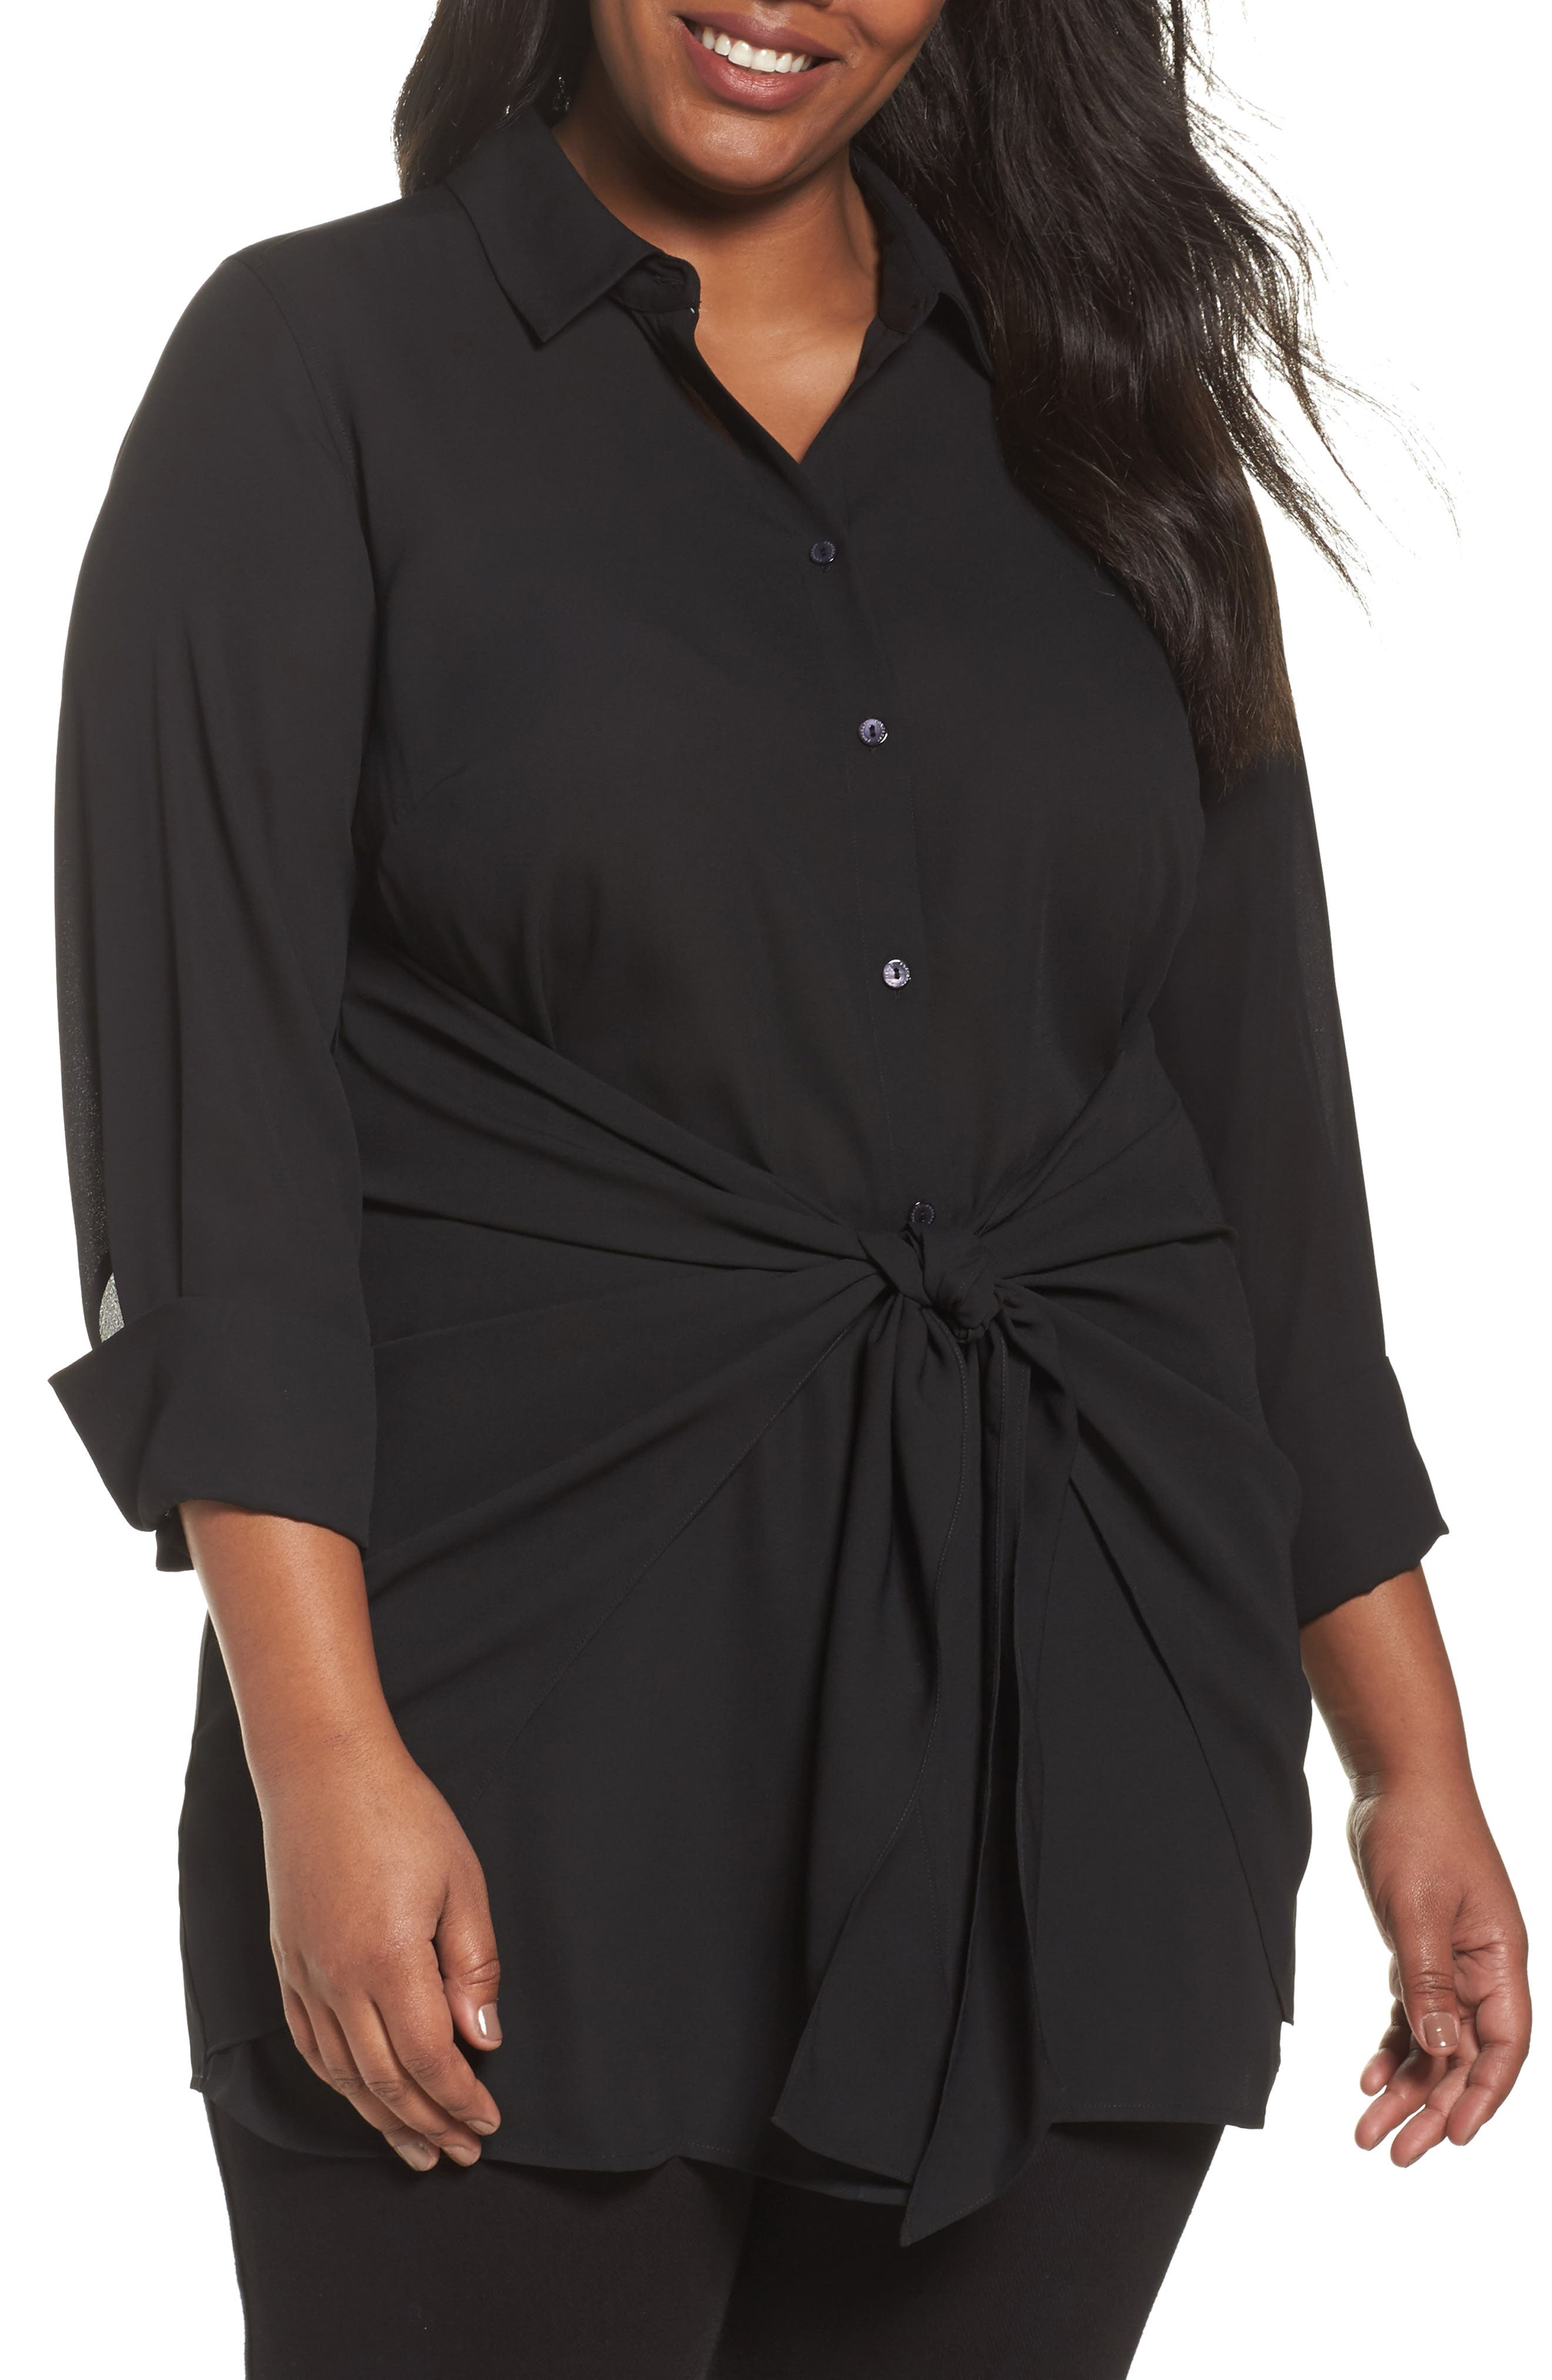 Main Image - Foxcroft Serena Knotted Crepe Tunic Blouse (Plus Size)